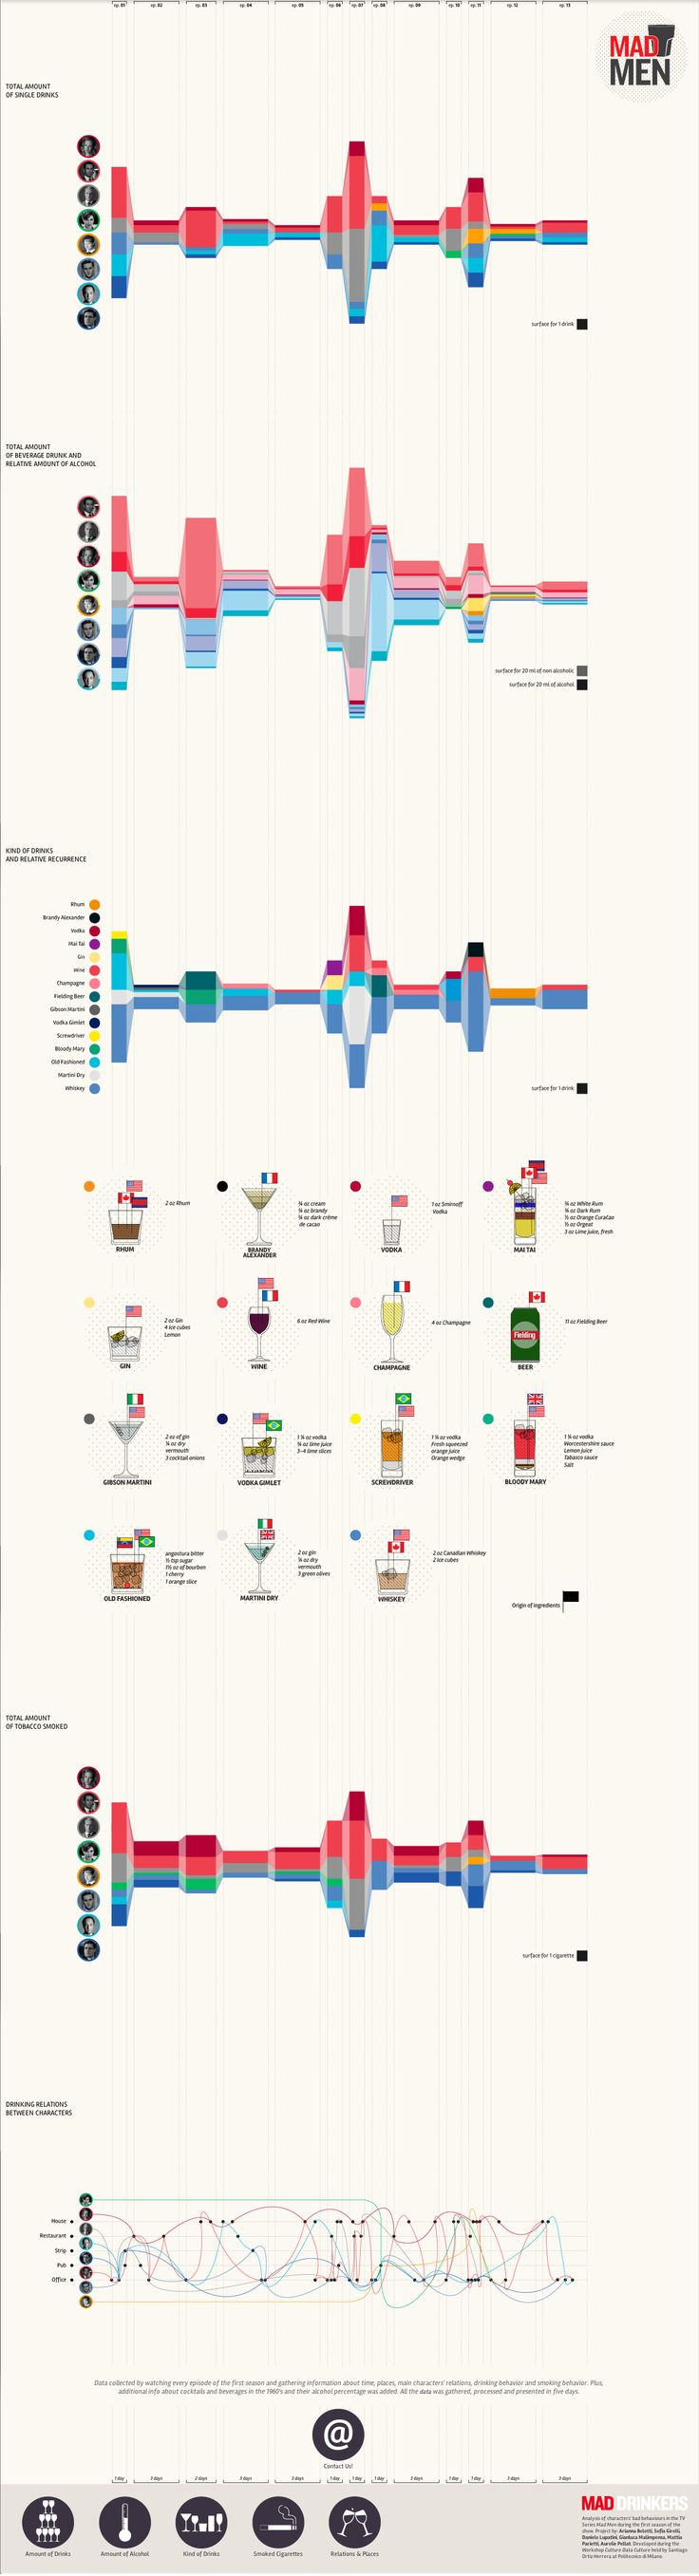 Mad Men Info graphic - how many drinks? Cool interactive version here: http://visual.ly/mad-drinkers?view=true